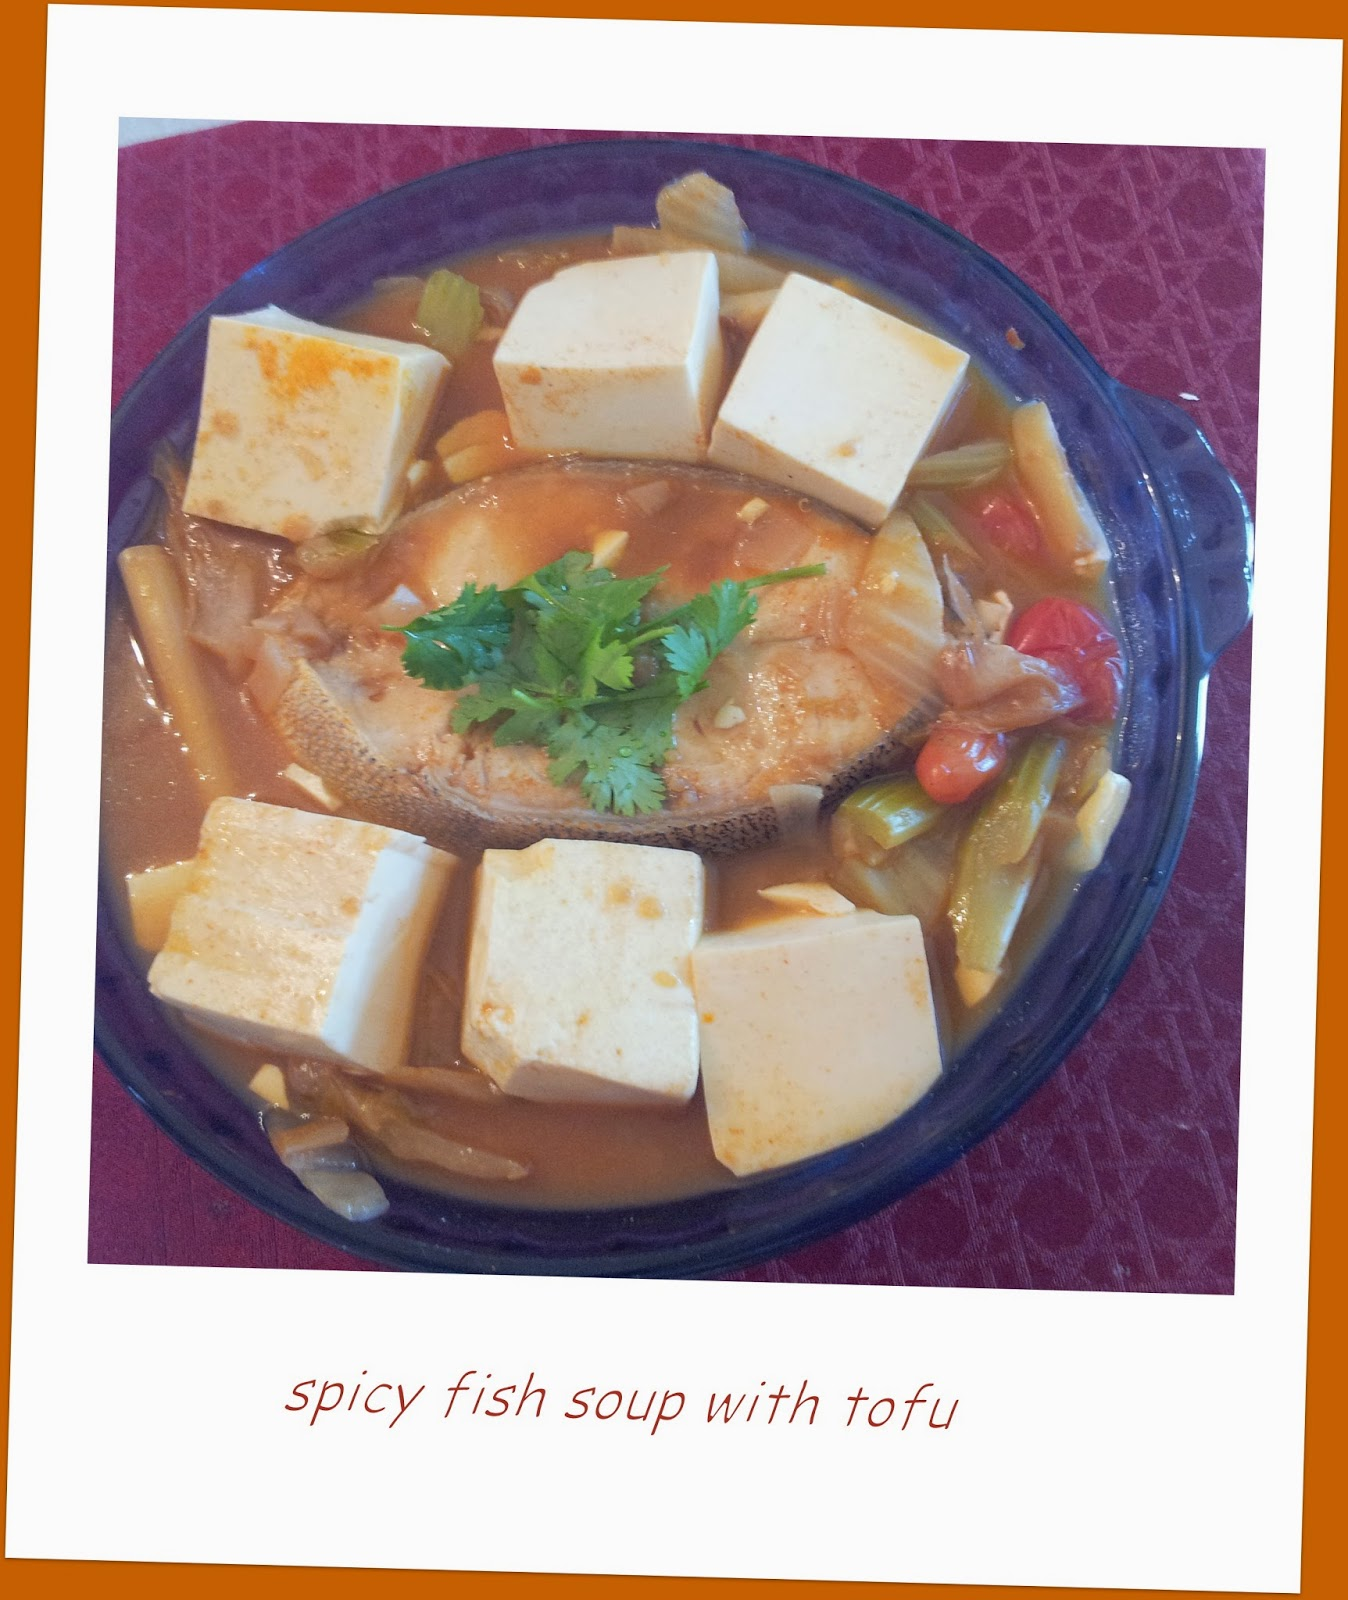 Little bellevue kitchen spicy fish soup with tofu for Spicy fish soup